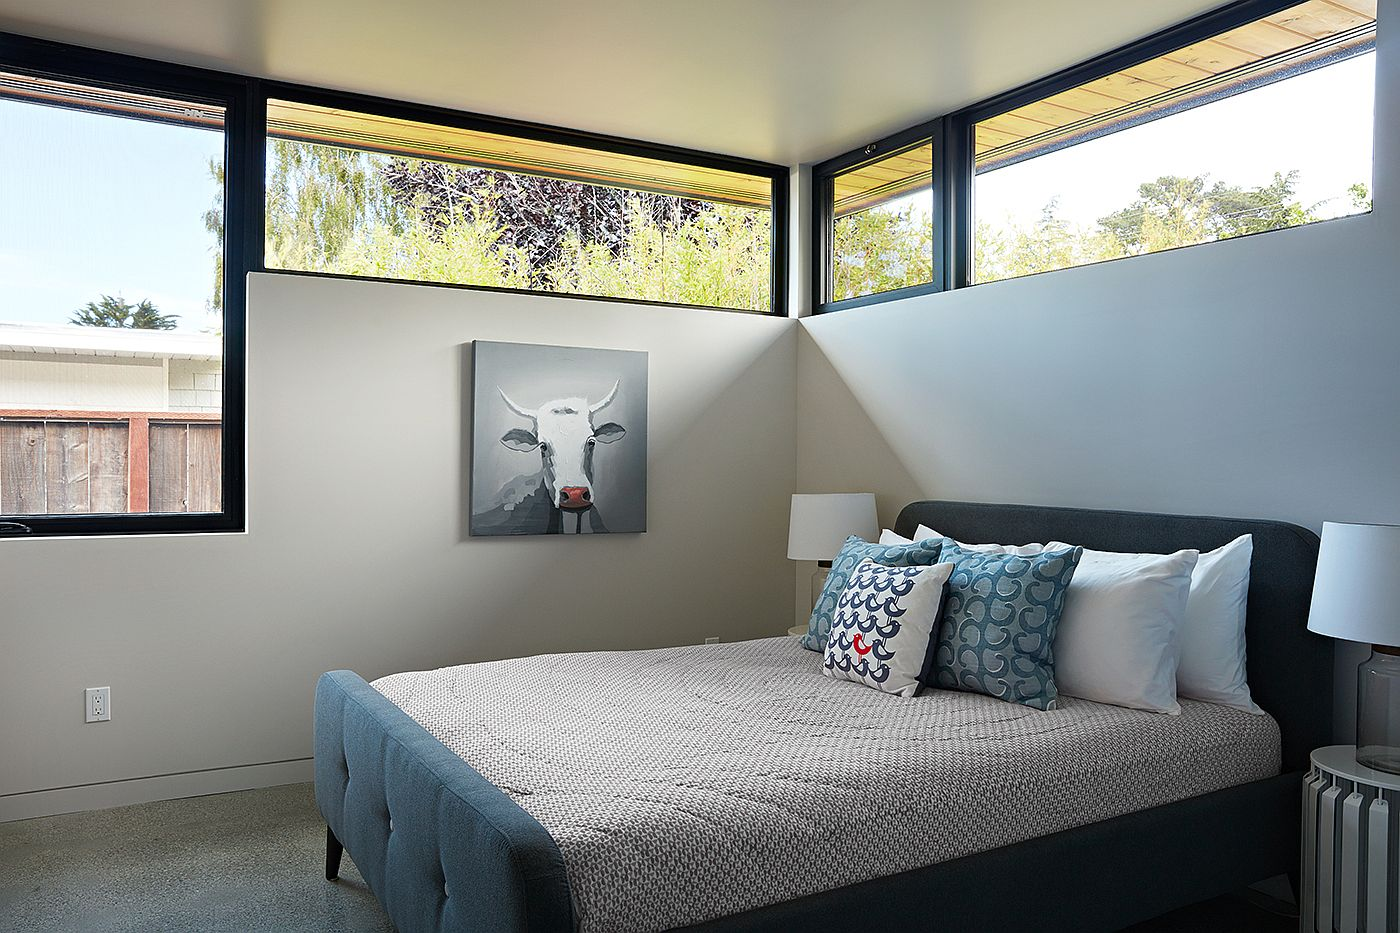 Nifty use of windows brings in ample natural light